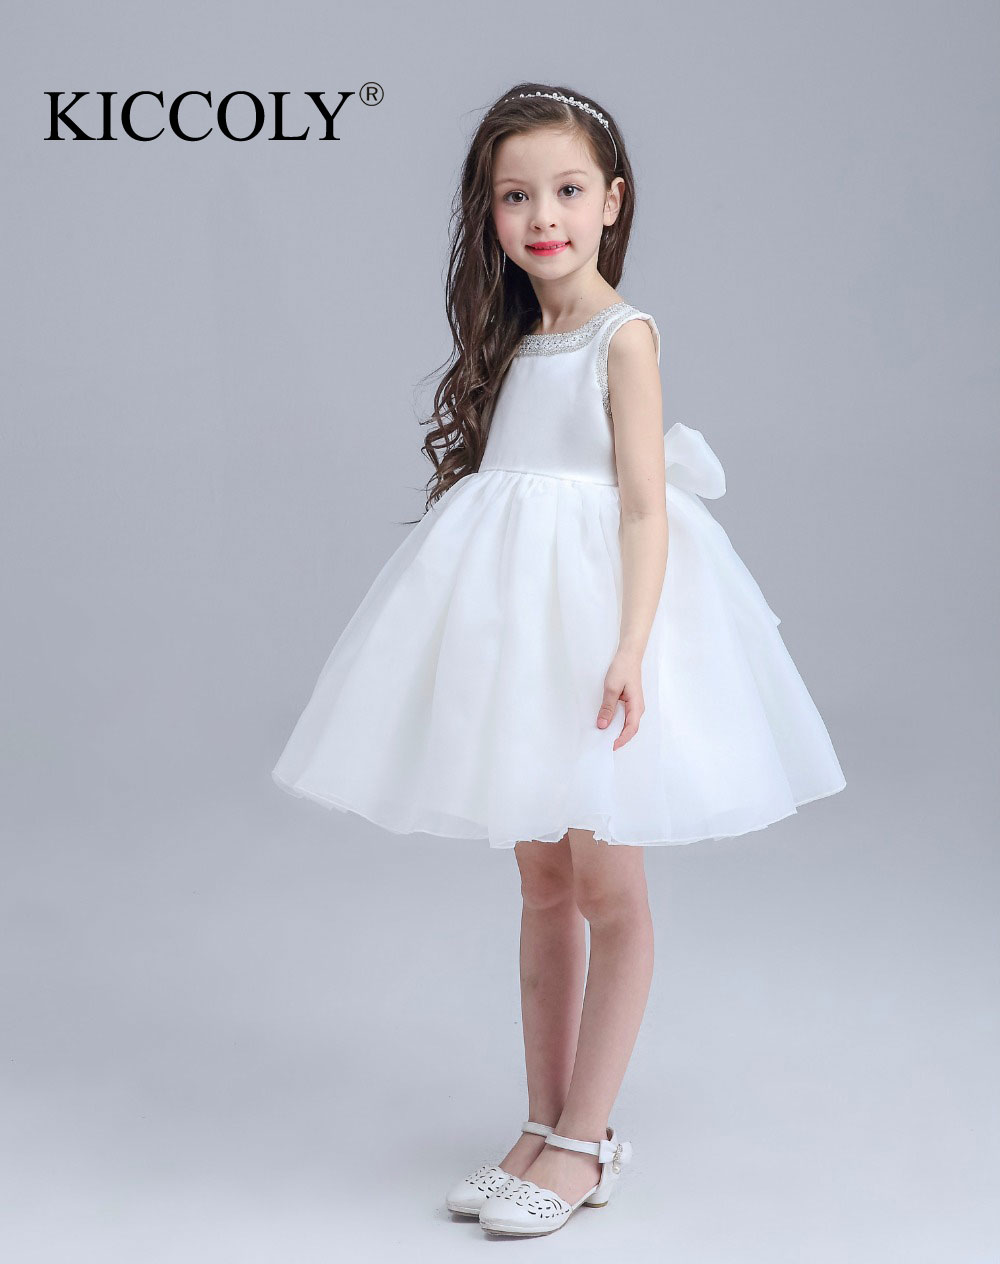 Toddler Glitz Pageant Dresses For Wedding 2016 First Communion Dresses Pageant Ball Gowns for Flower Girls vestidos de comunion 2016 lace flower girl dresses 1 12 junior kid glitz years ball gowns the first communion dresses for girls pageant dresses